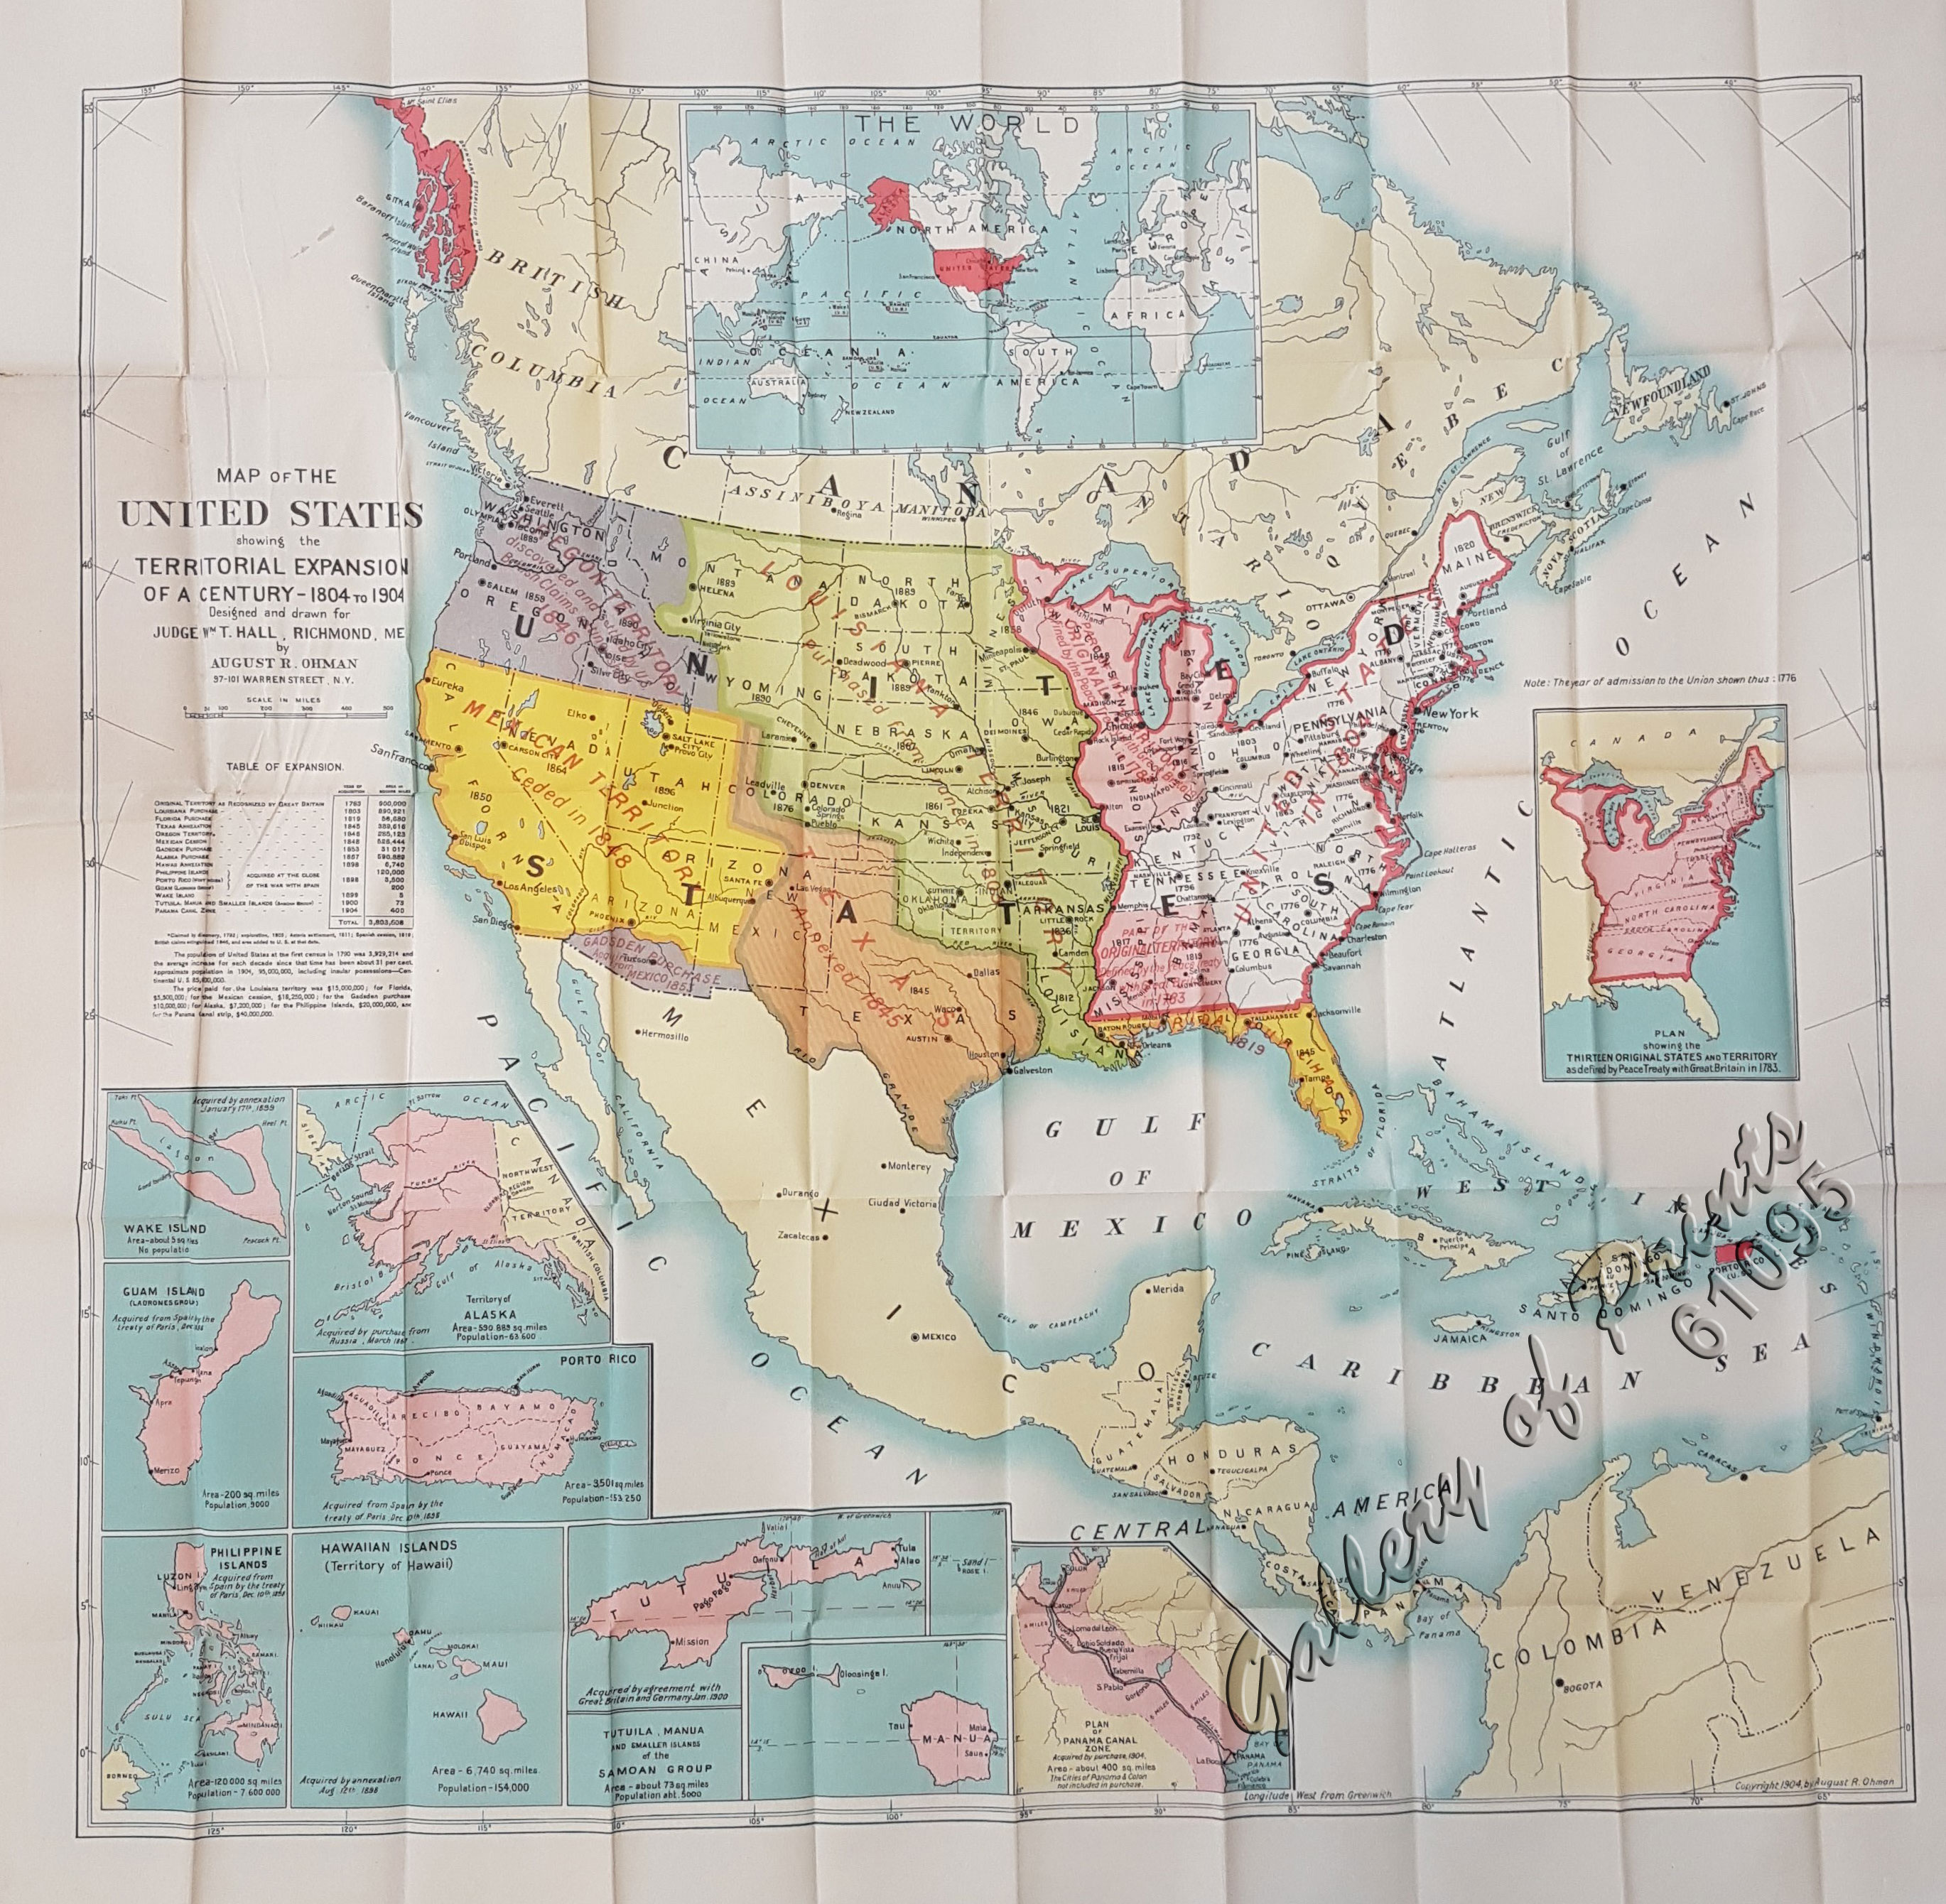 Small Map Of The United States.Map Of The United States Showing The Territorial Expansion Of A